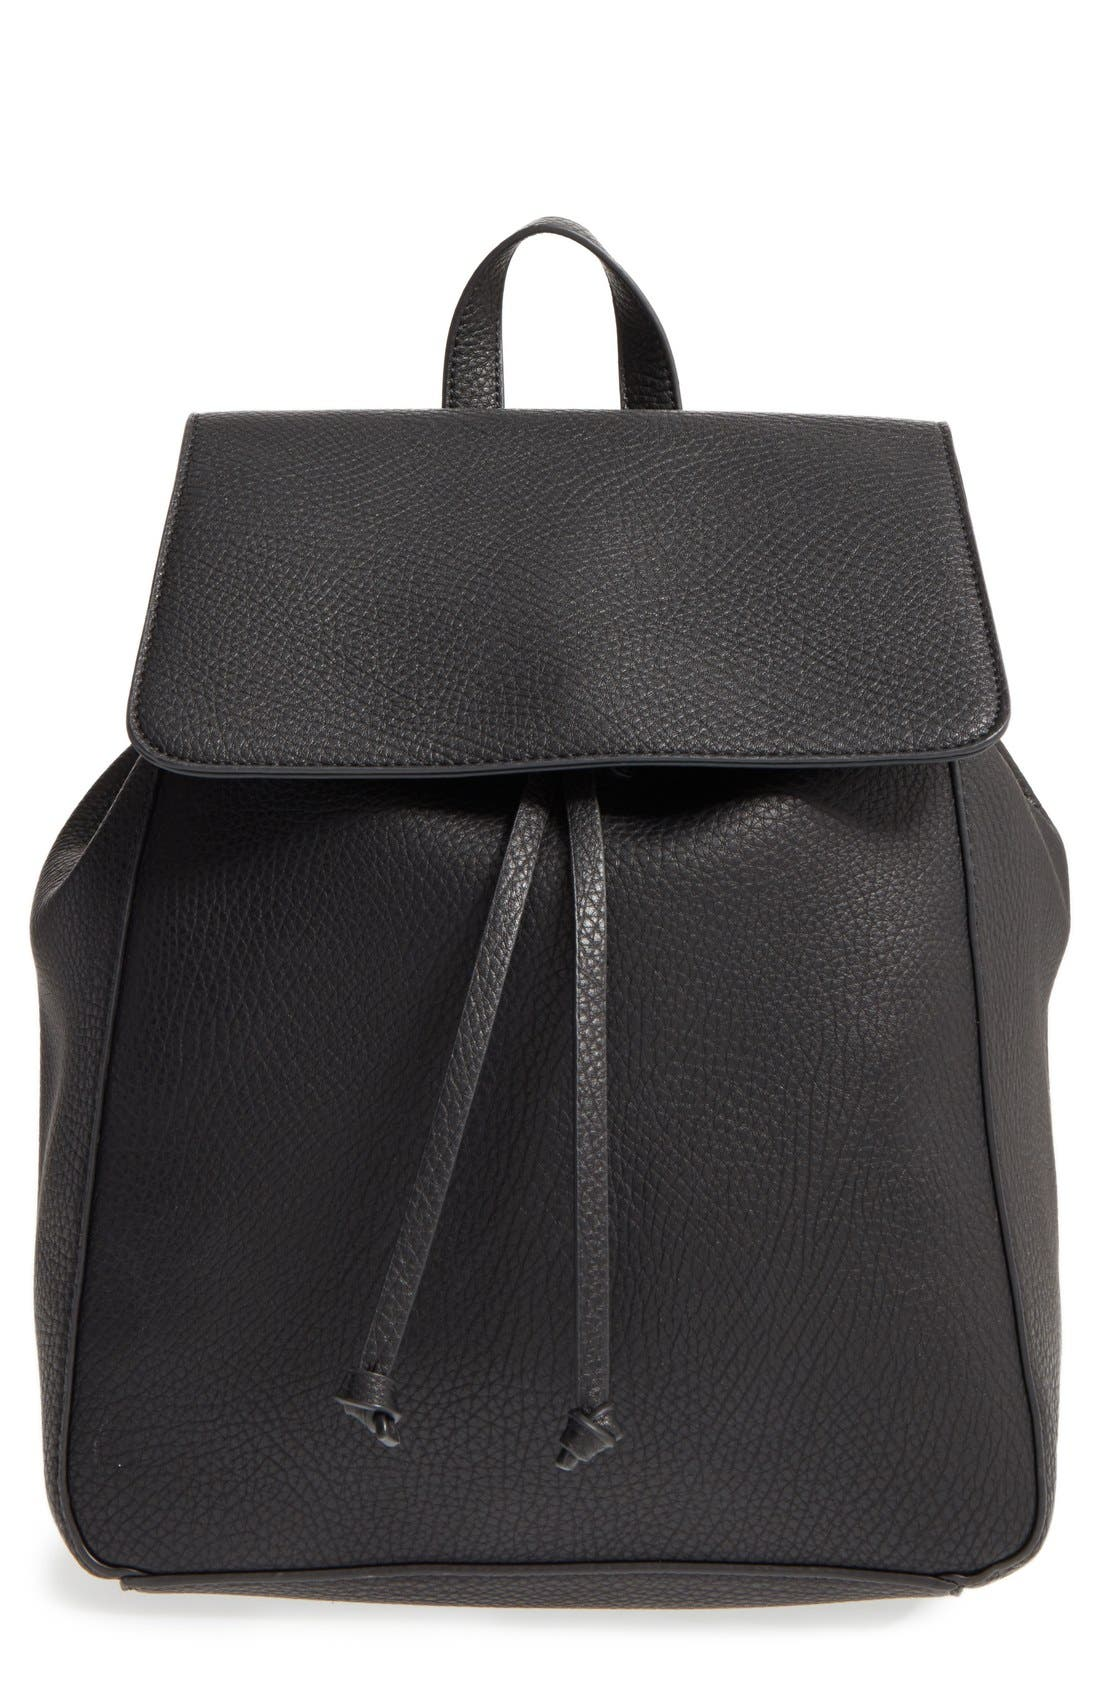 Main Image - Sole Society 'Iver' Faux Leather Drawstring Backpack